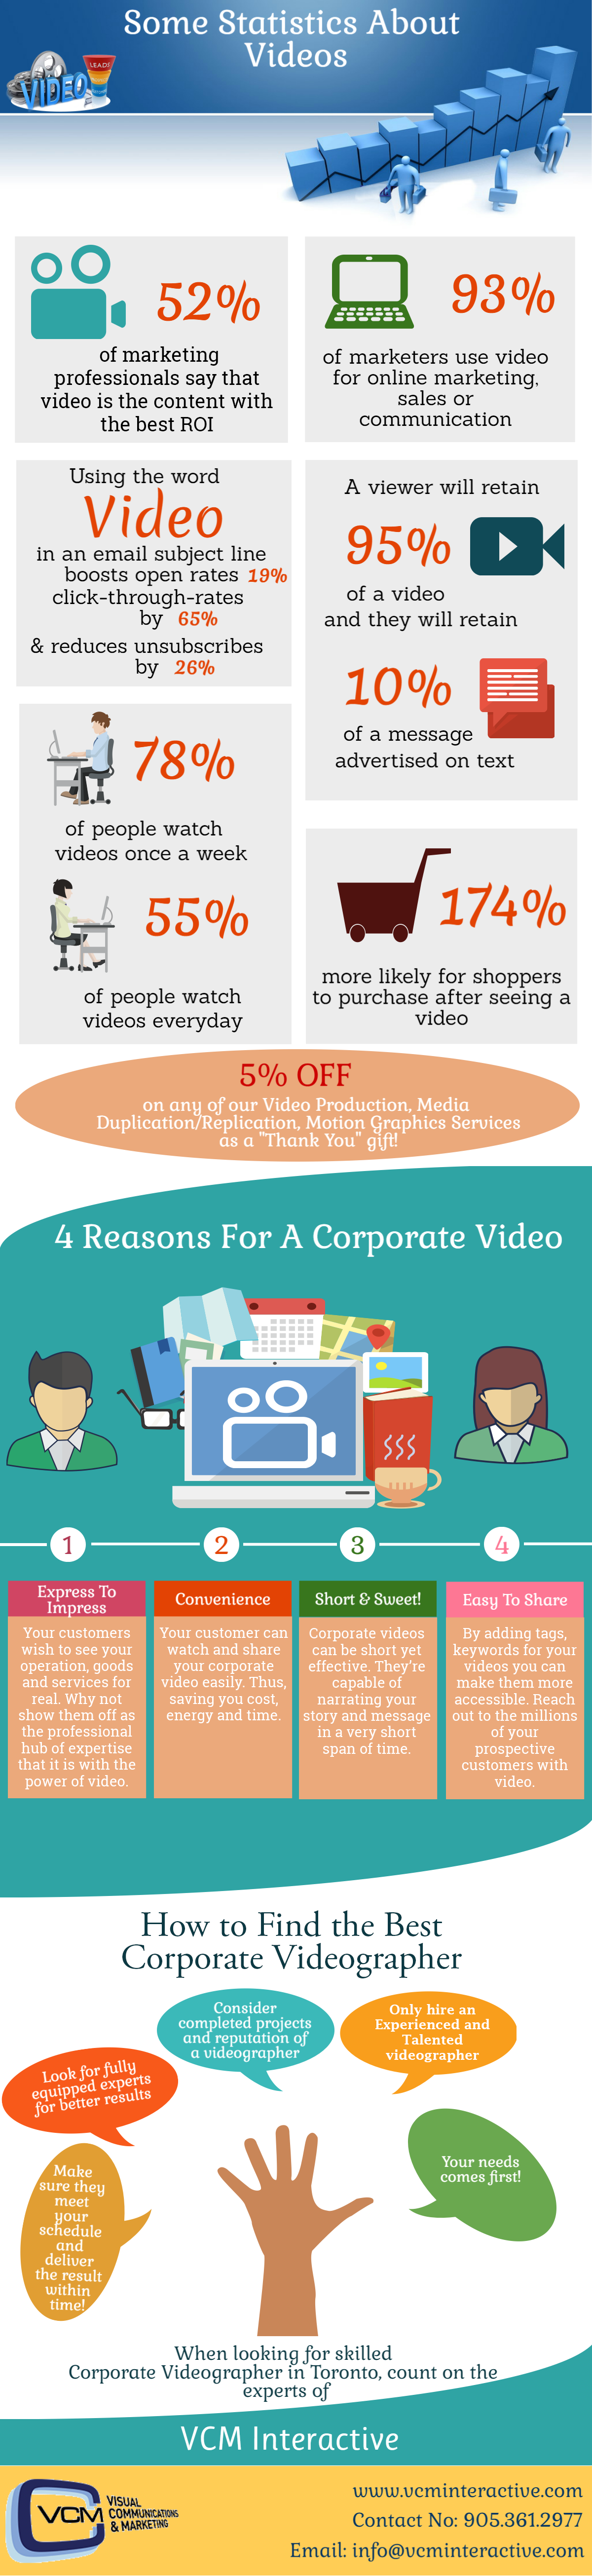 corporate video production Toronto